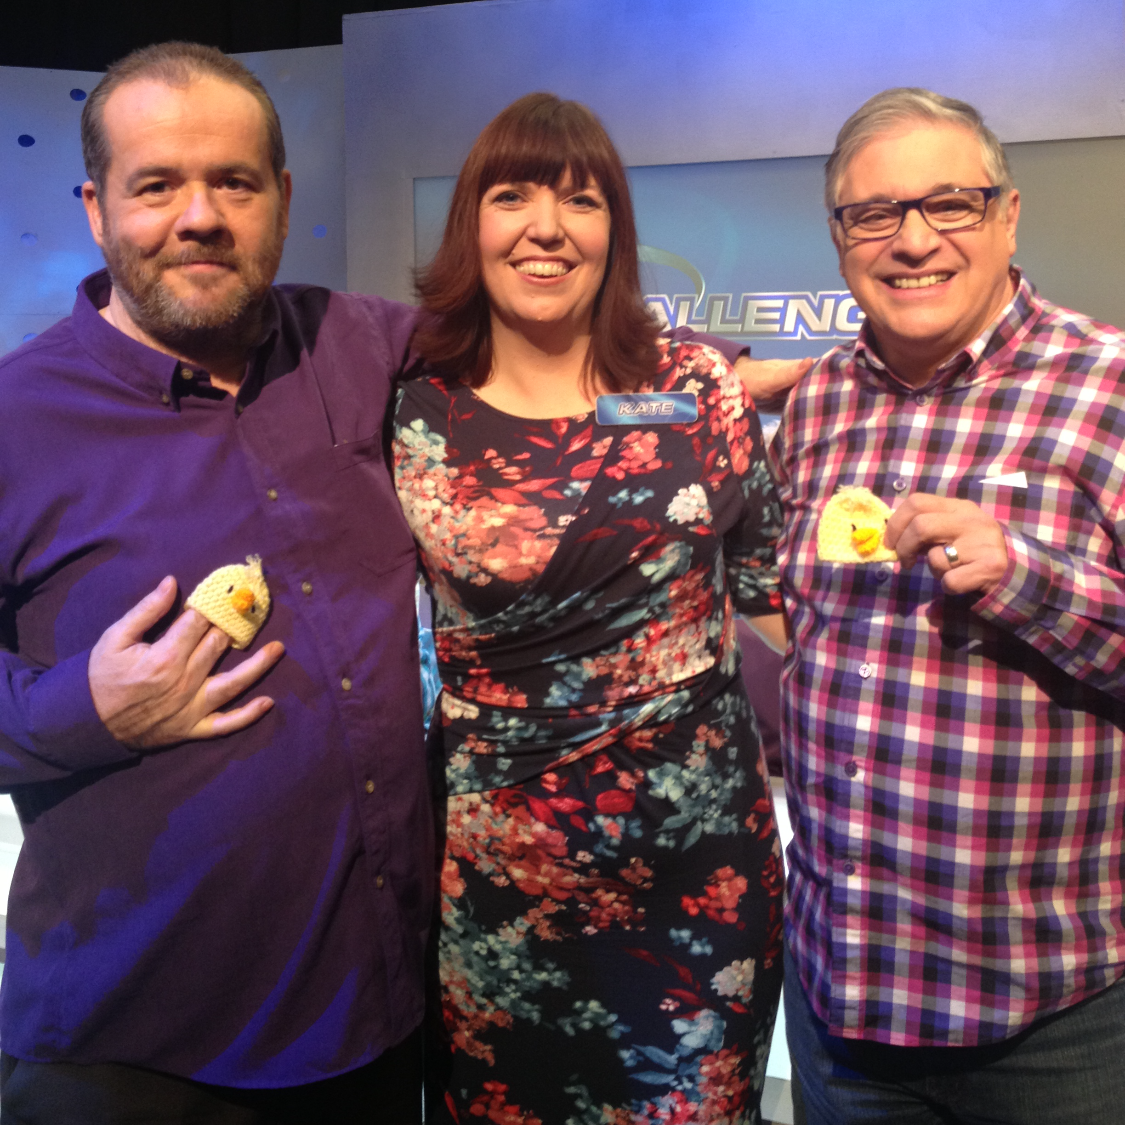 Eggheads with their cosies